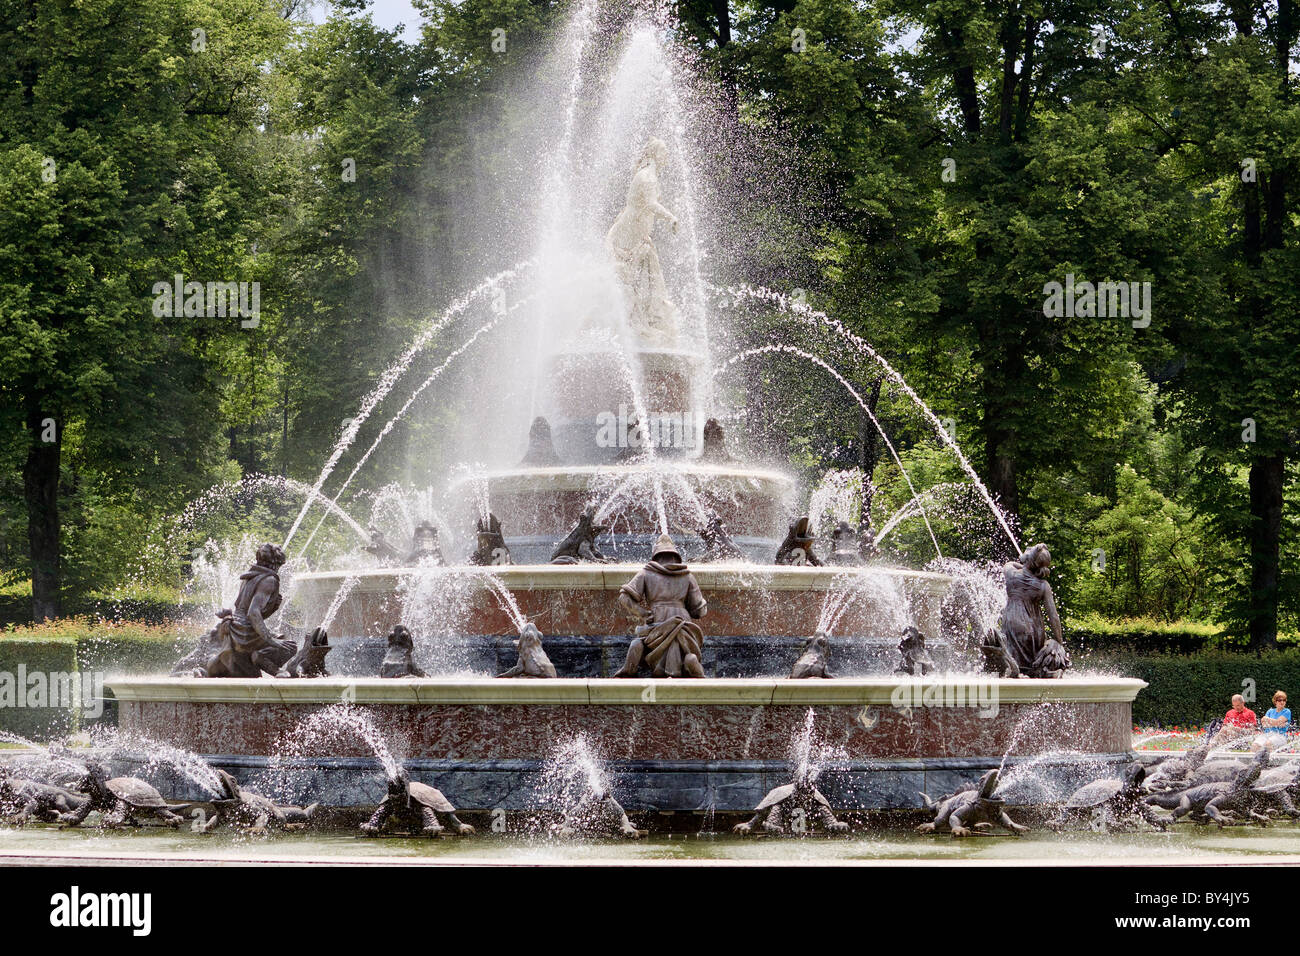 Austria Herrenchiemsee Garden - Stock Image